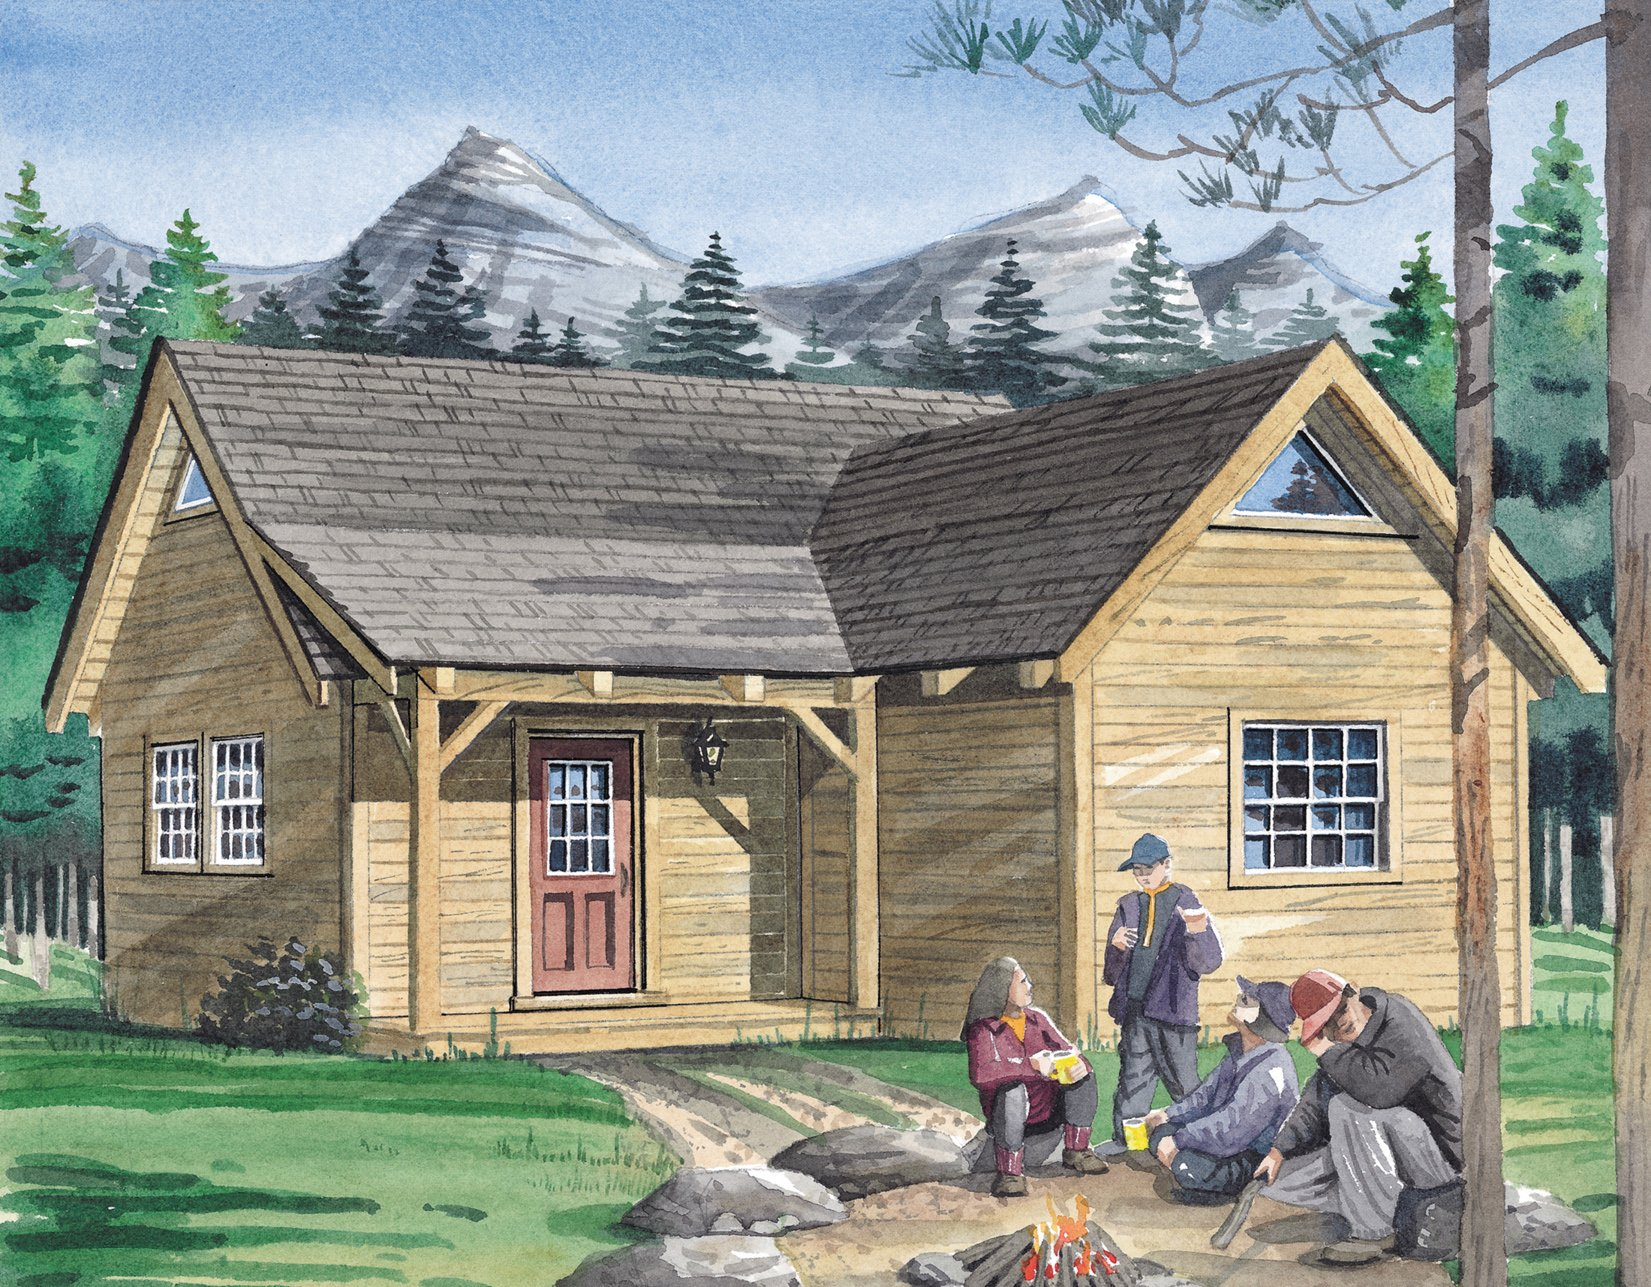 The denver timber frame hq Timber framed house plans